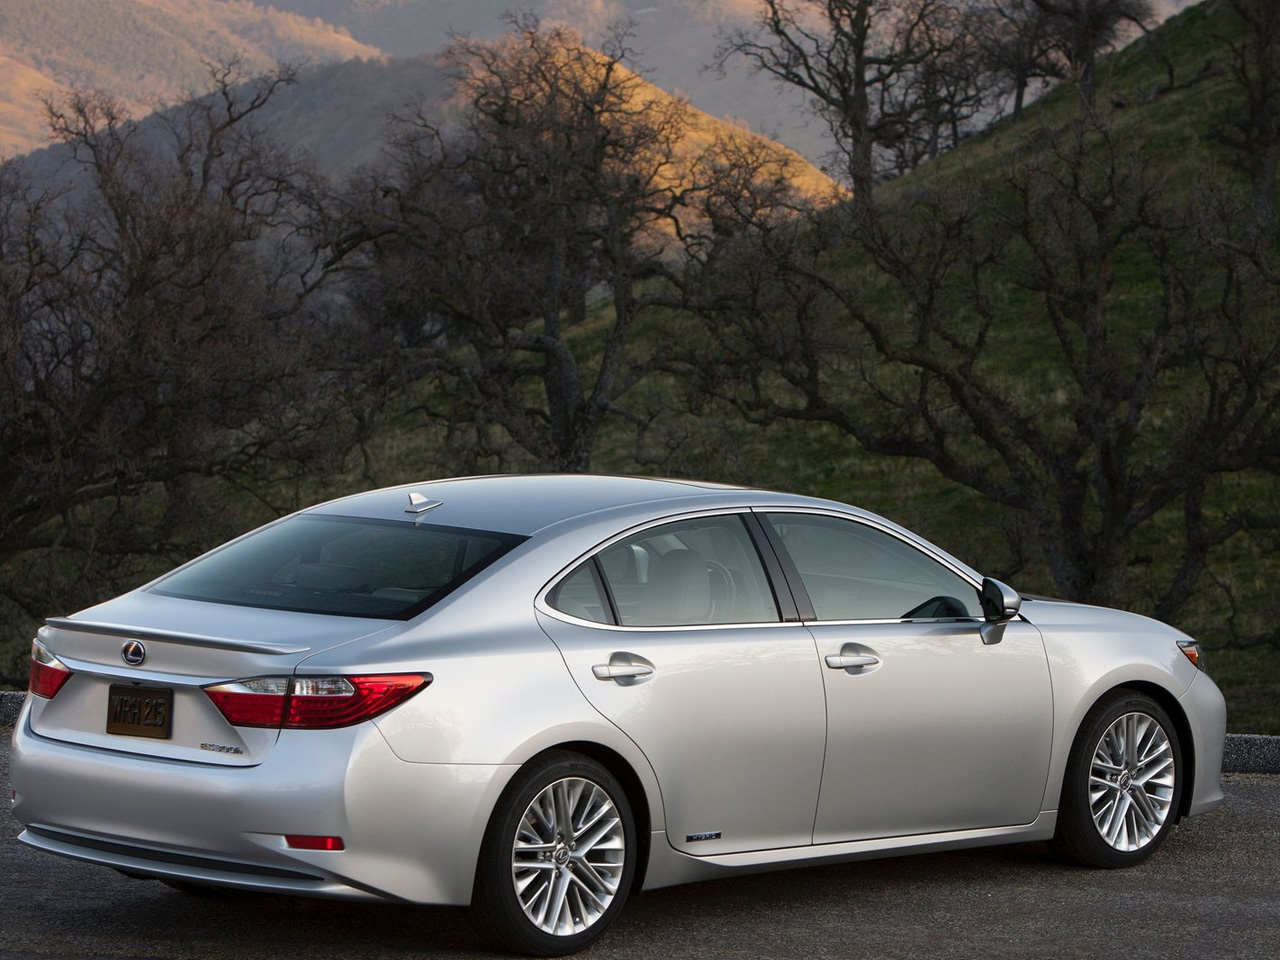 2013 lexus es 300h review and pictures. Black Bedroom Furniture Sets. Home Design Ideas